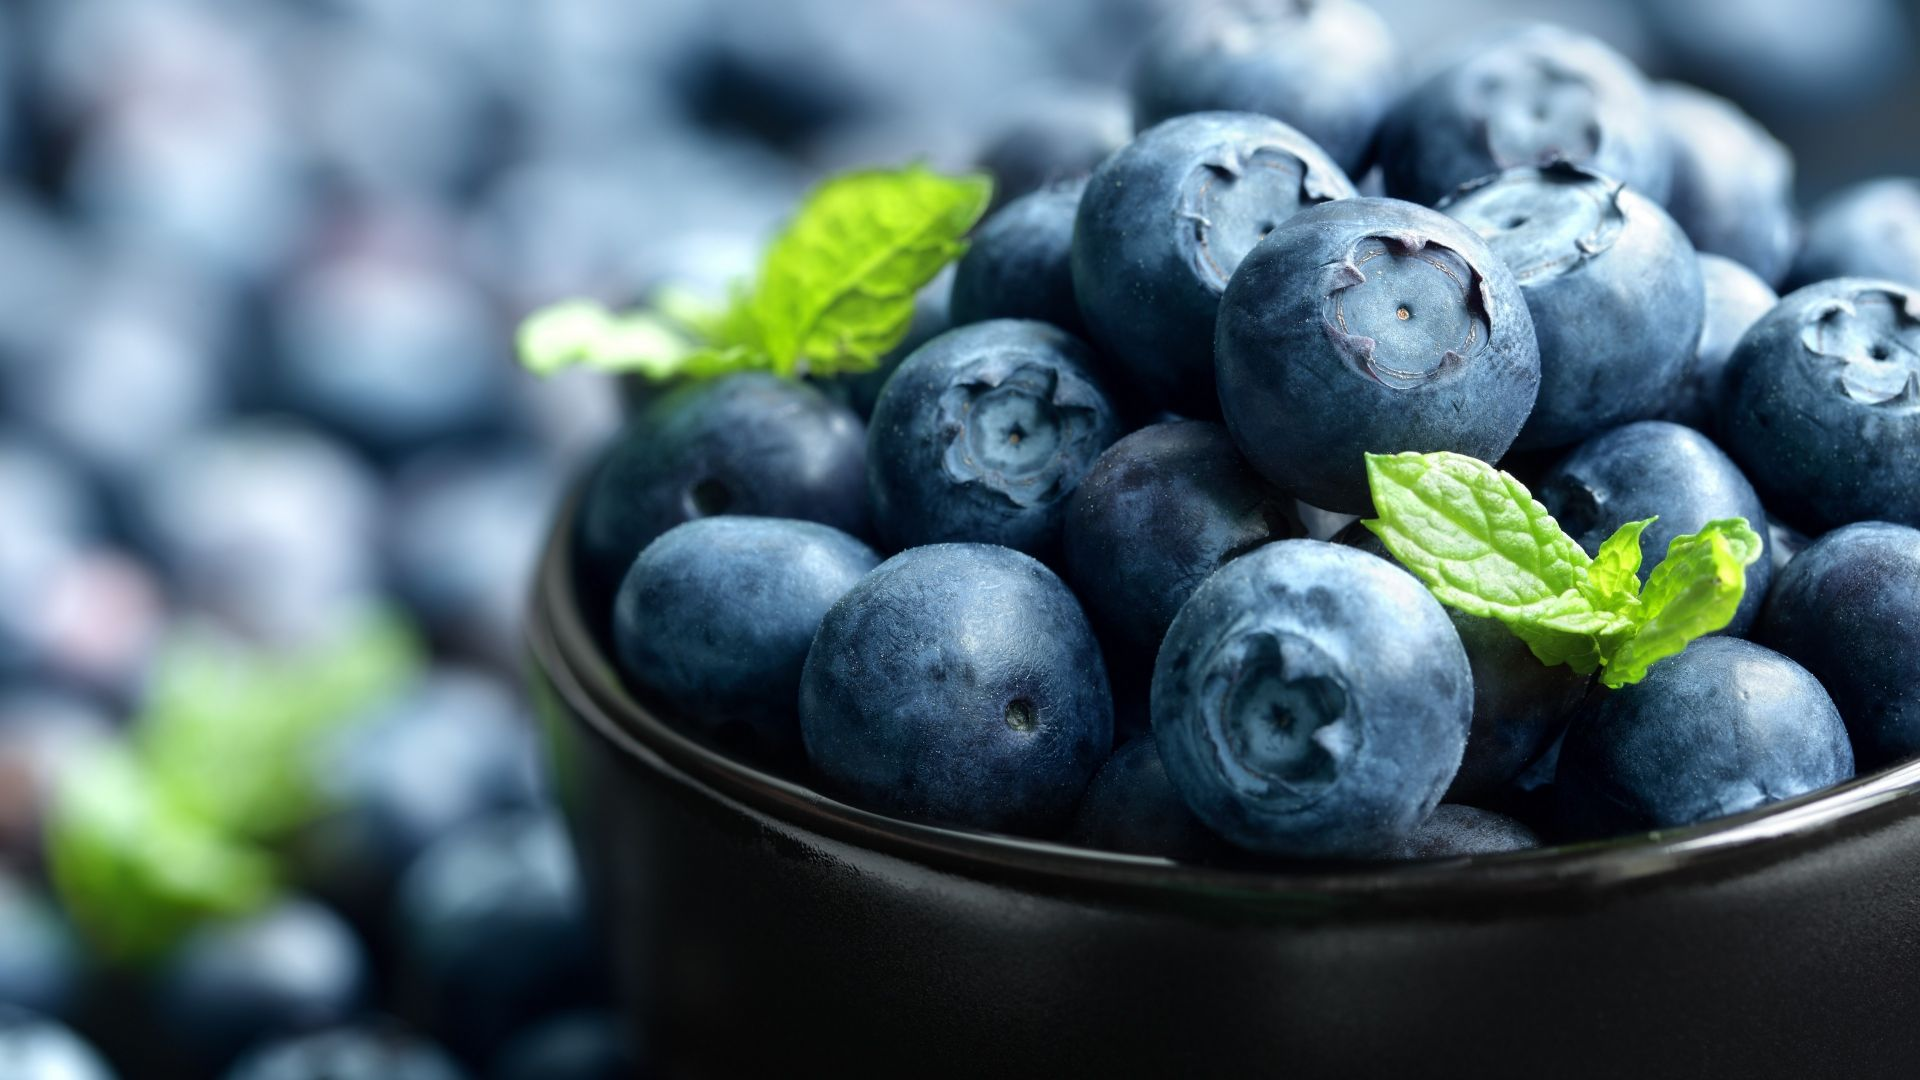 blueberry, berries, 4k (horizontal)